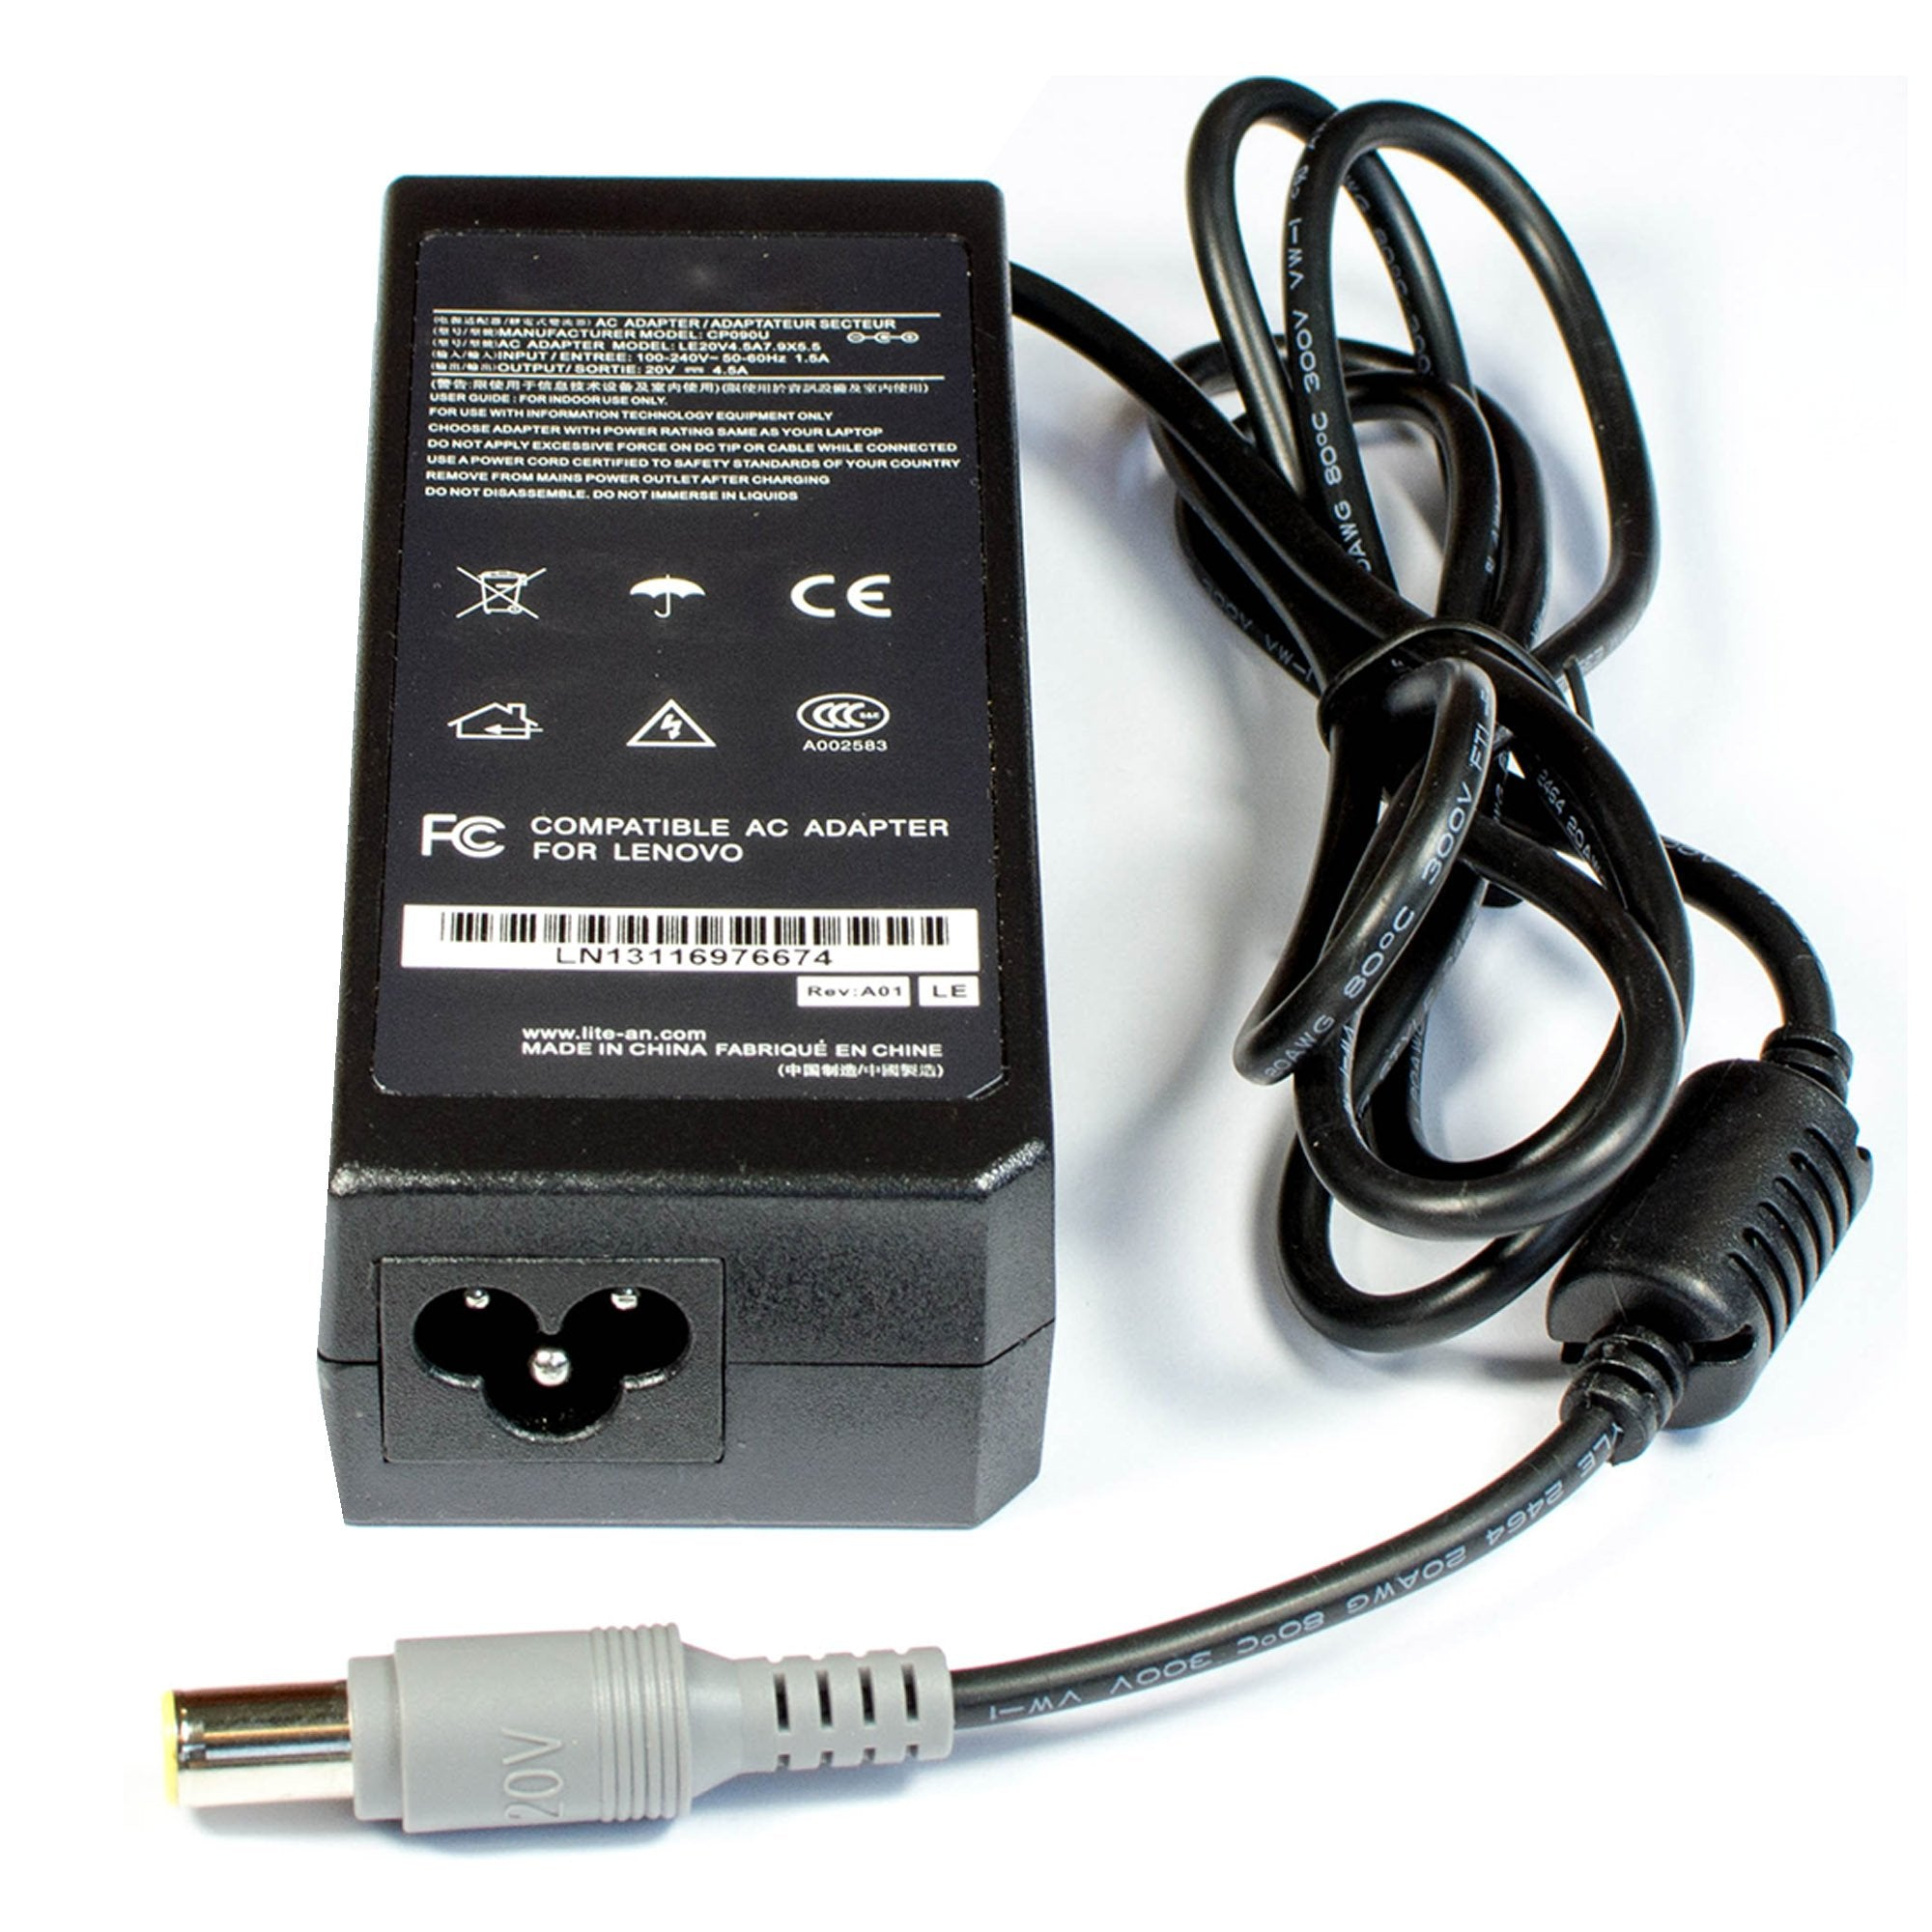 Lenovo ThinkPad Z60m 2529E 3F 2529E1U 2529E2U Laptop AC Adapter Charger